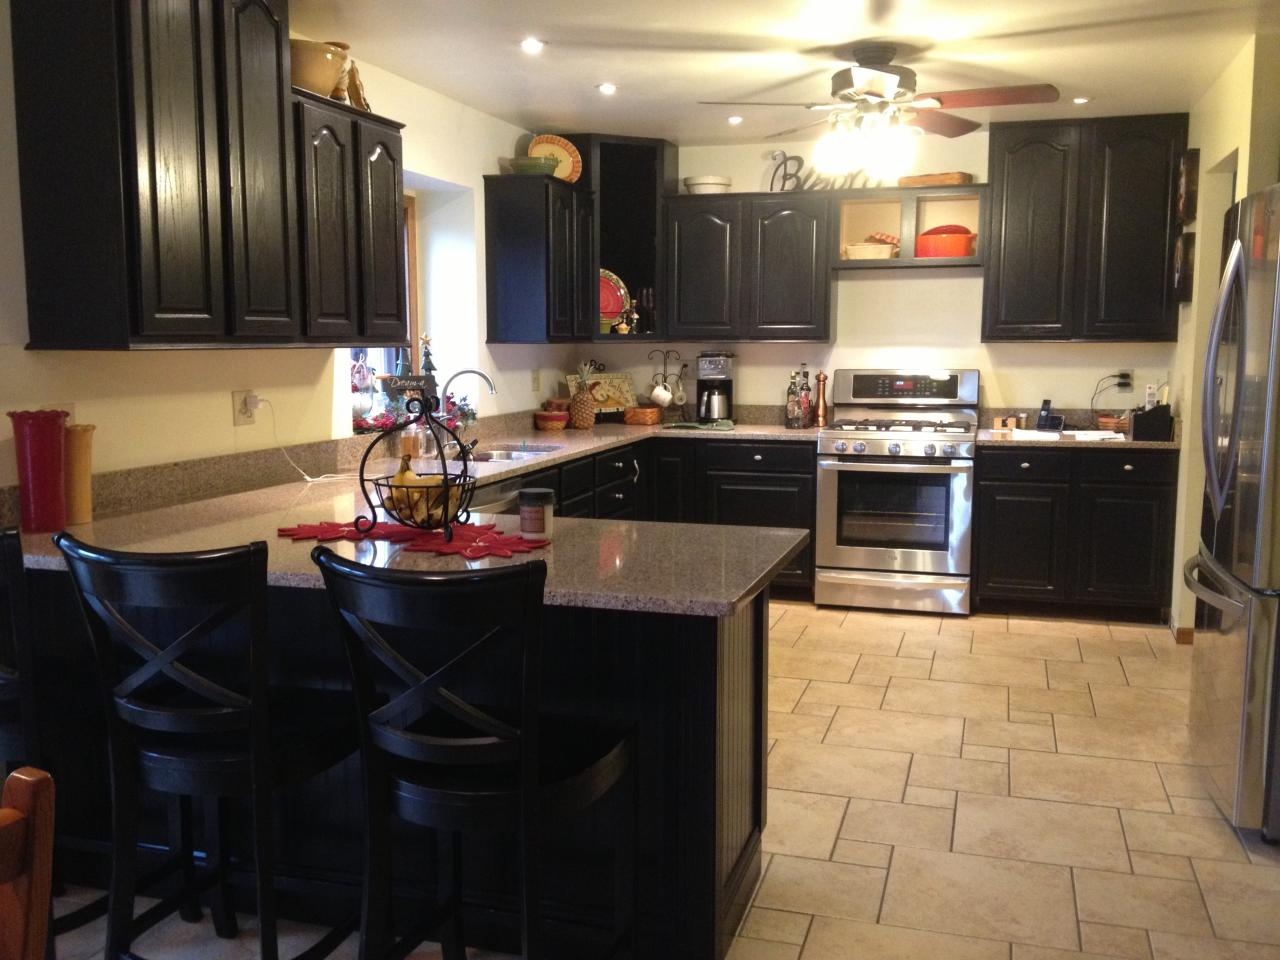 faux the love of it - kitchen and furniture refinishing with paint